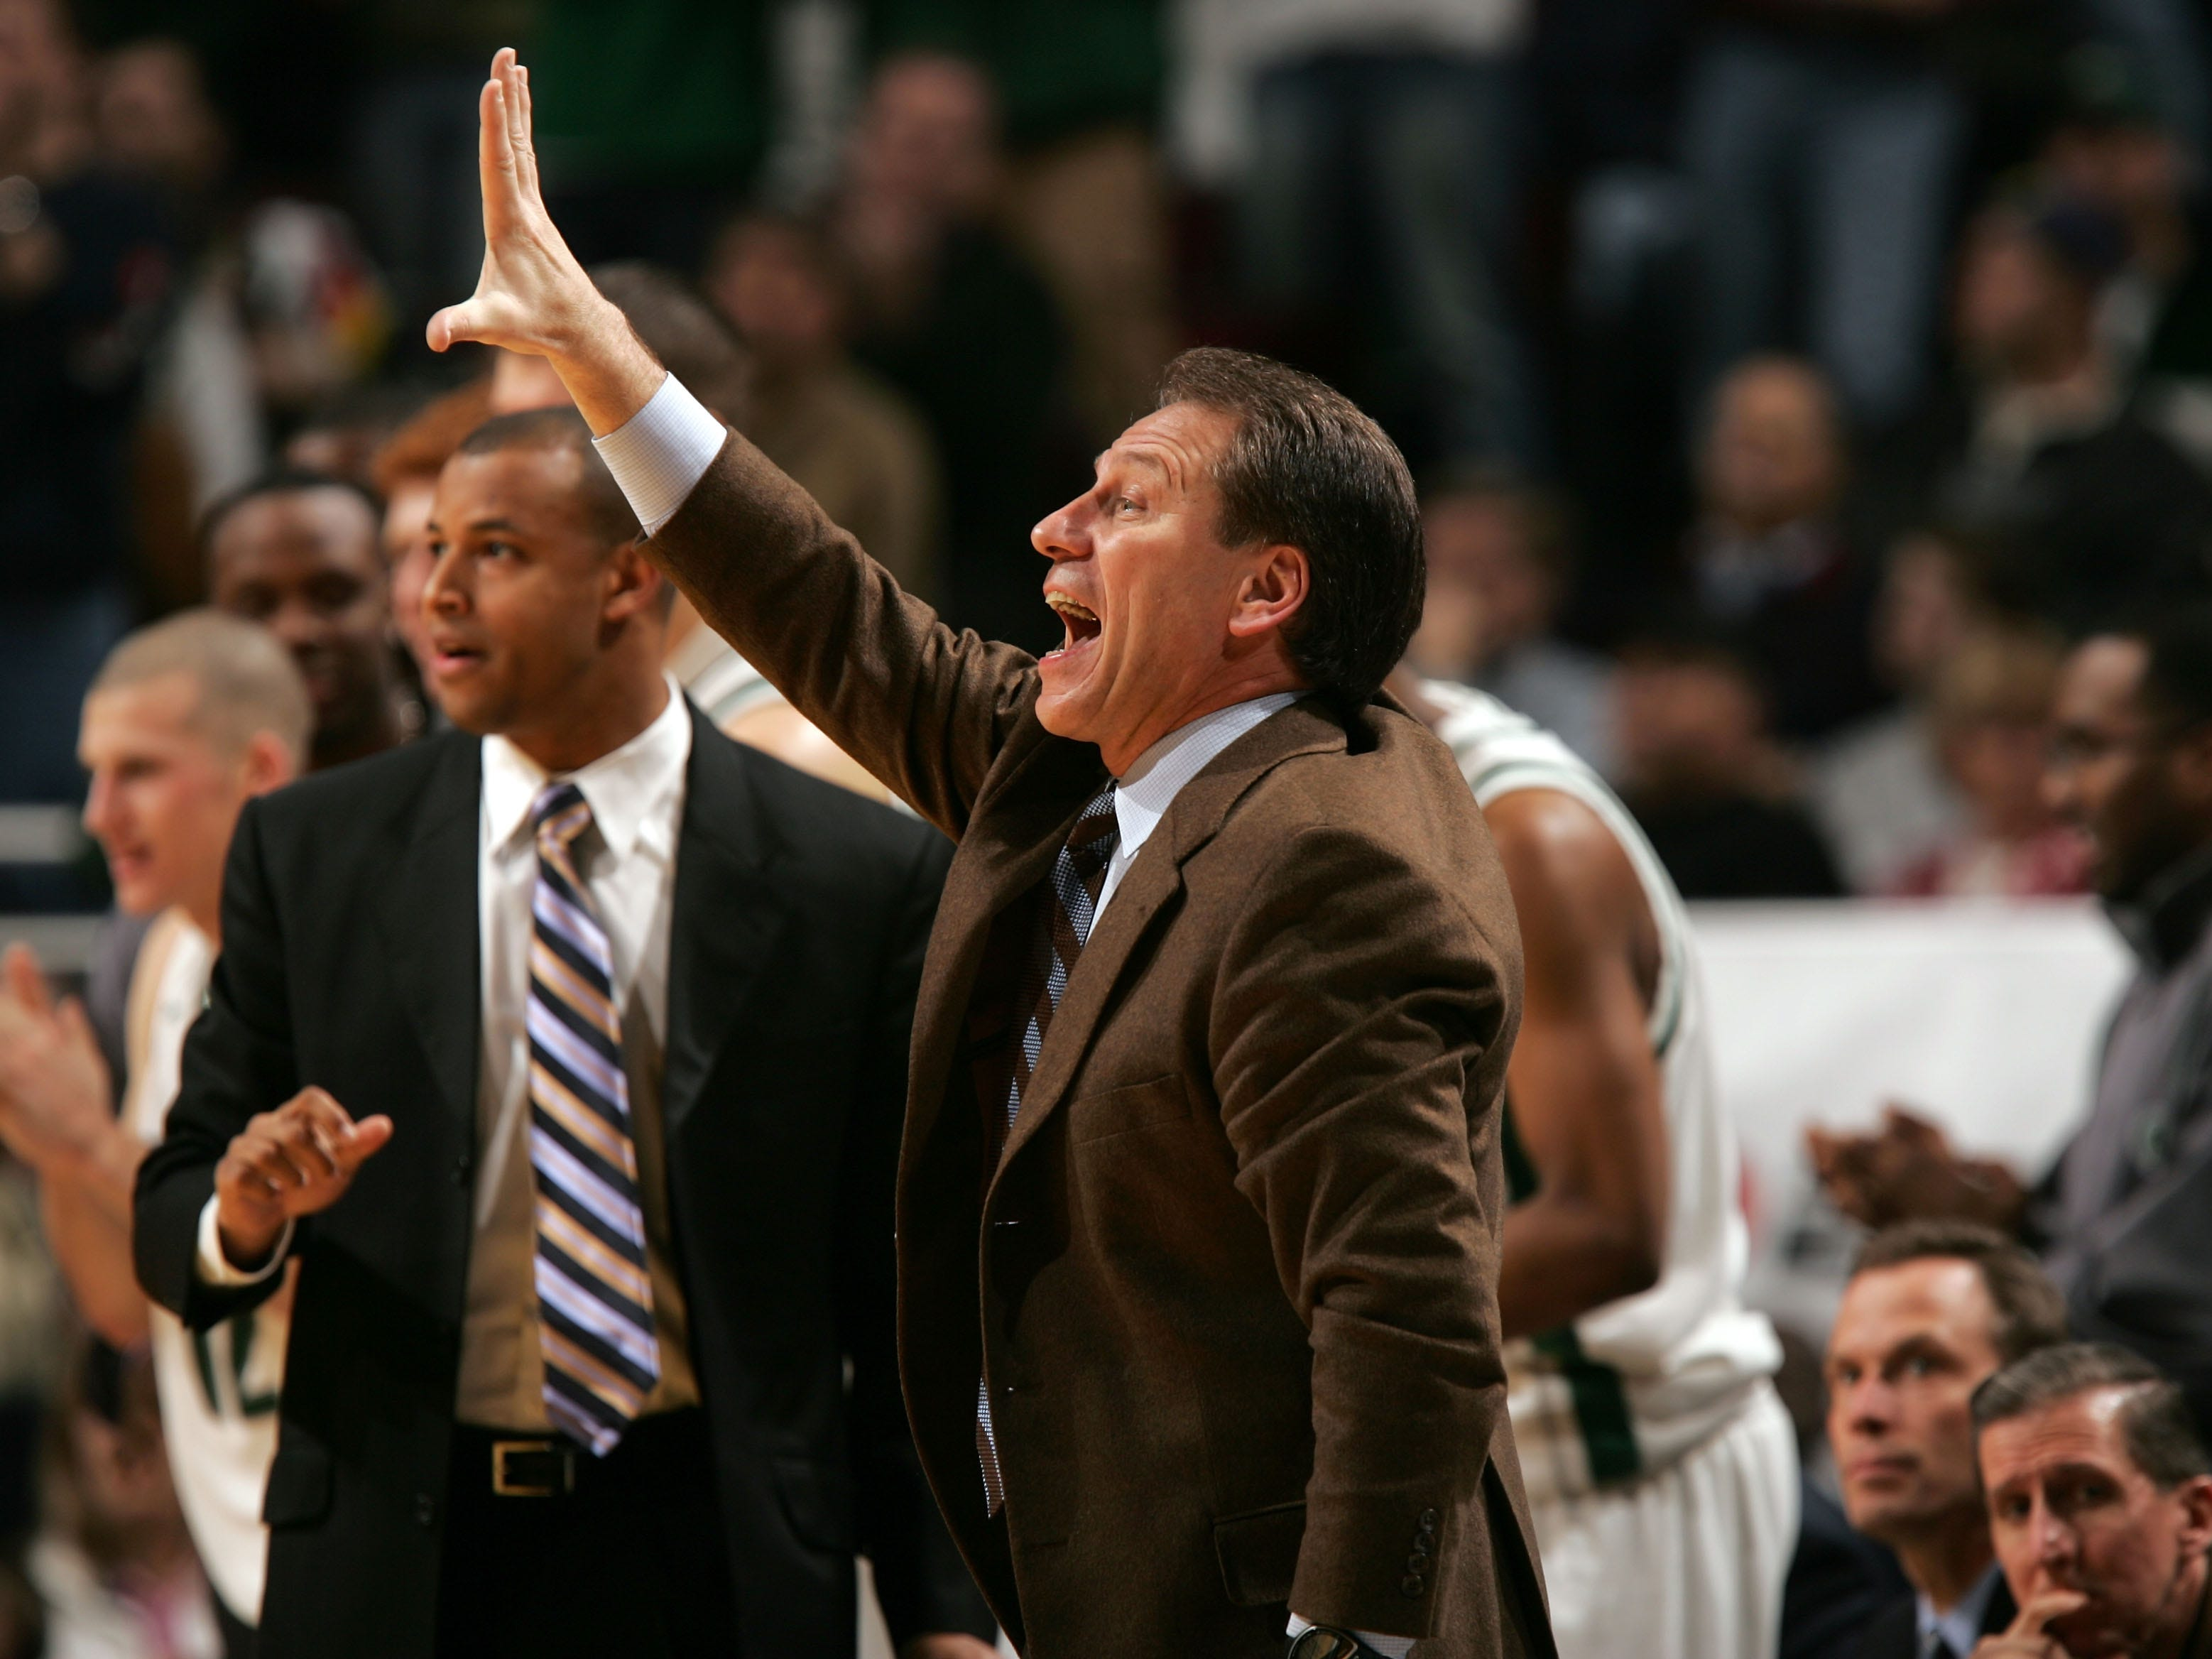 Head coach Tom Izzo of the Michigan State Spartans coaches his players against the Iowa Hawkeyes during the quaterfinals on the second day of the Big Ten Men's Conference Basketball Tournament March 11, 2005 at the United Center in Chicago, Illinois. Iowa won 71-69. Assistant coach Mark Montgomery stands right next to him.